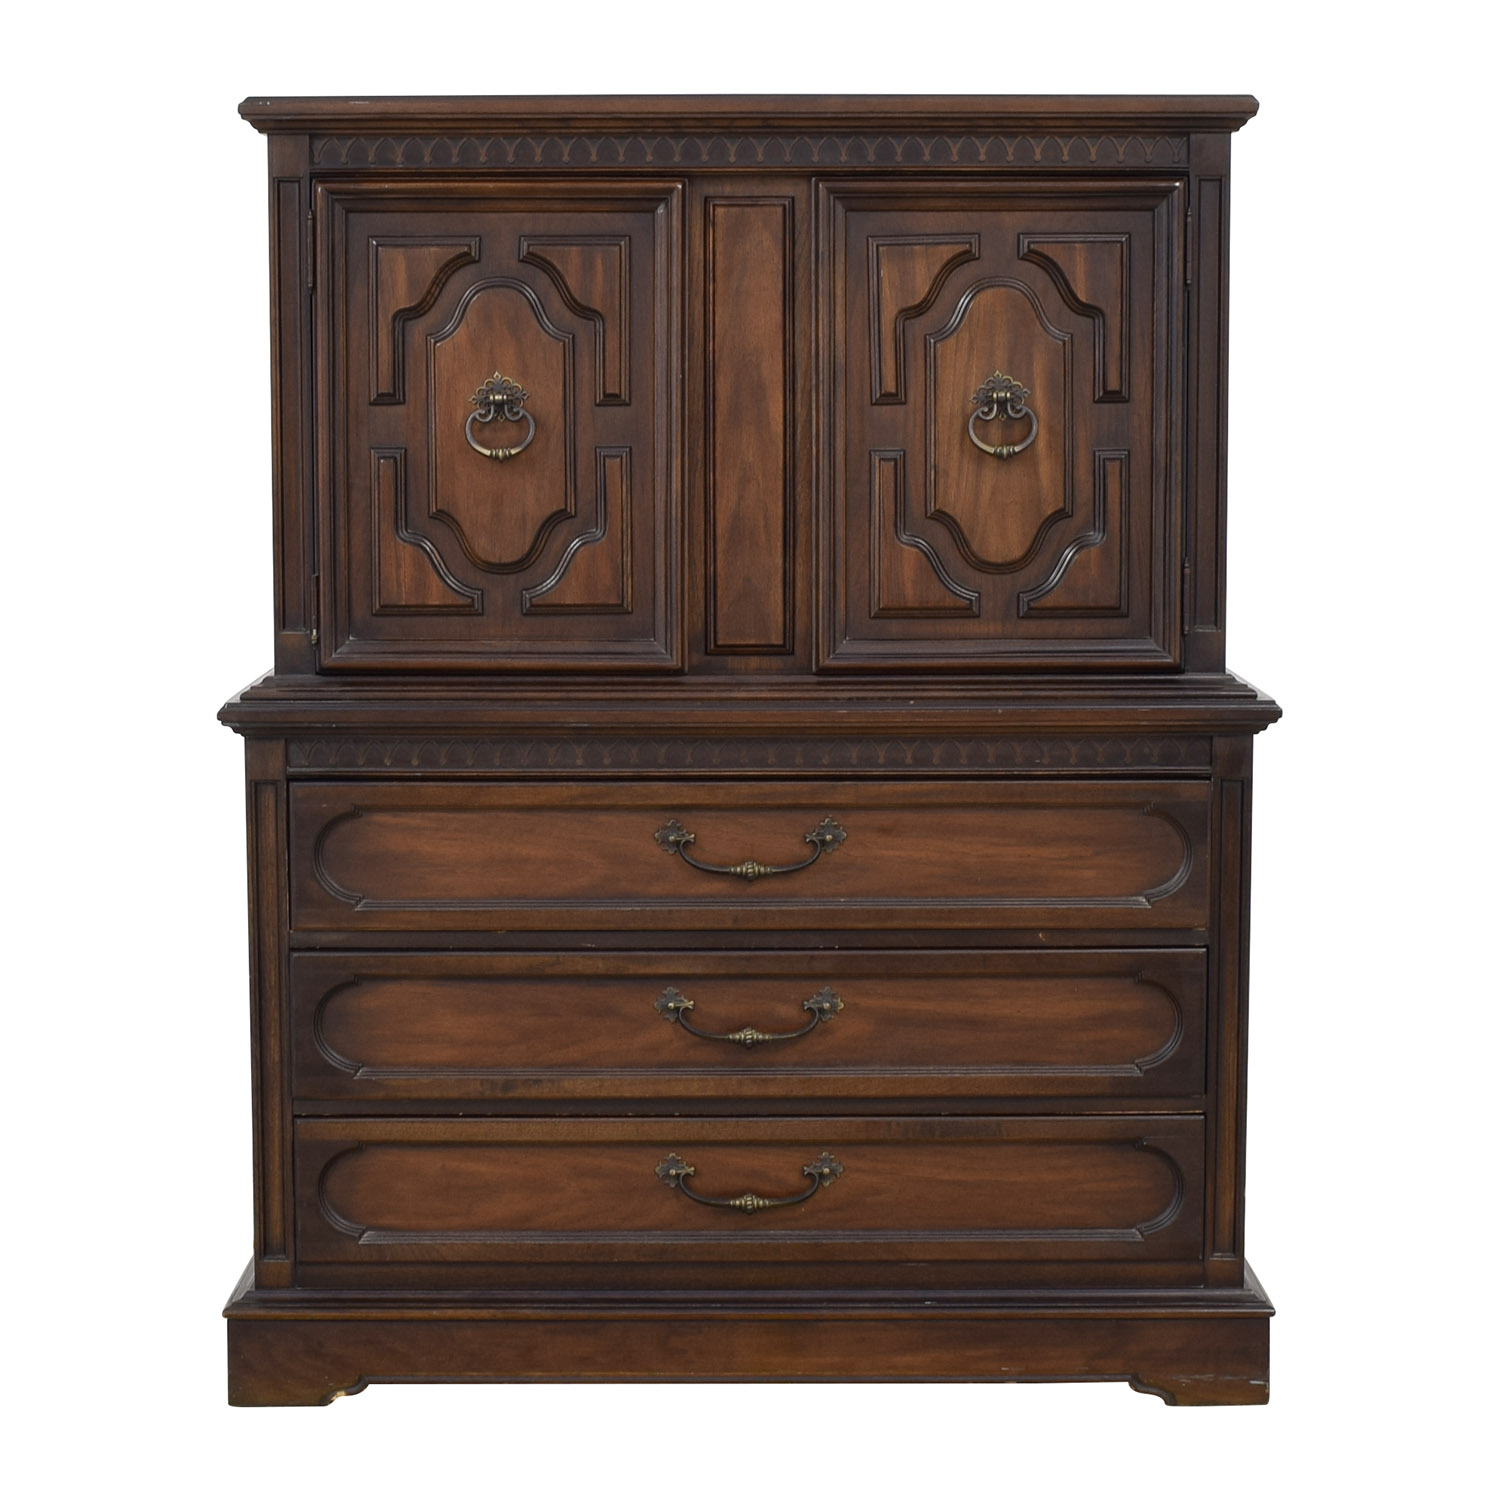 United Furniture United Furniture Bureau Dressers